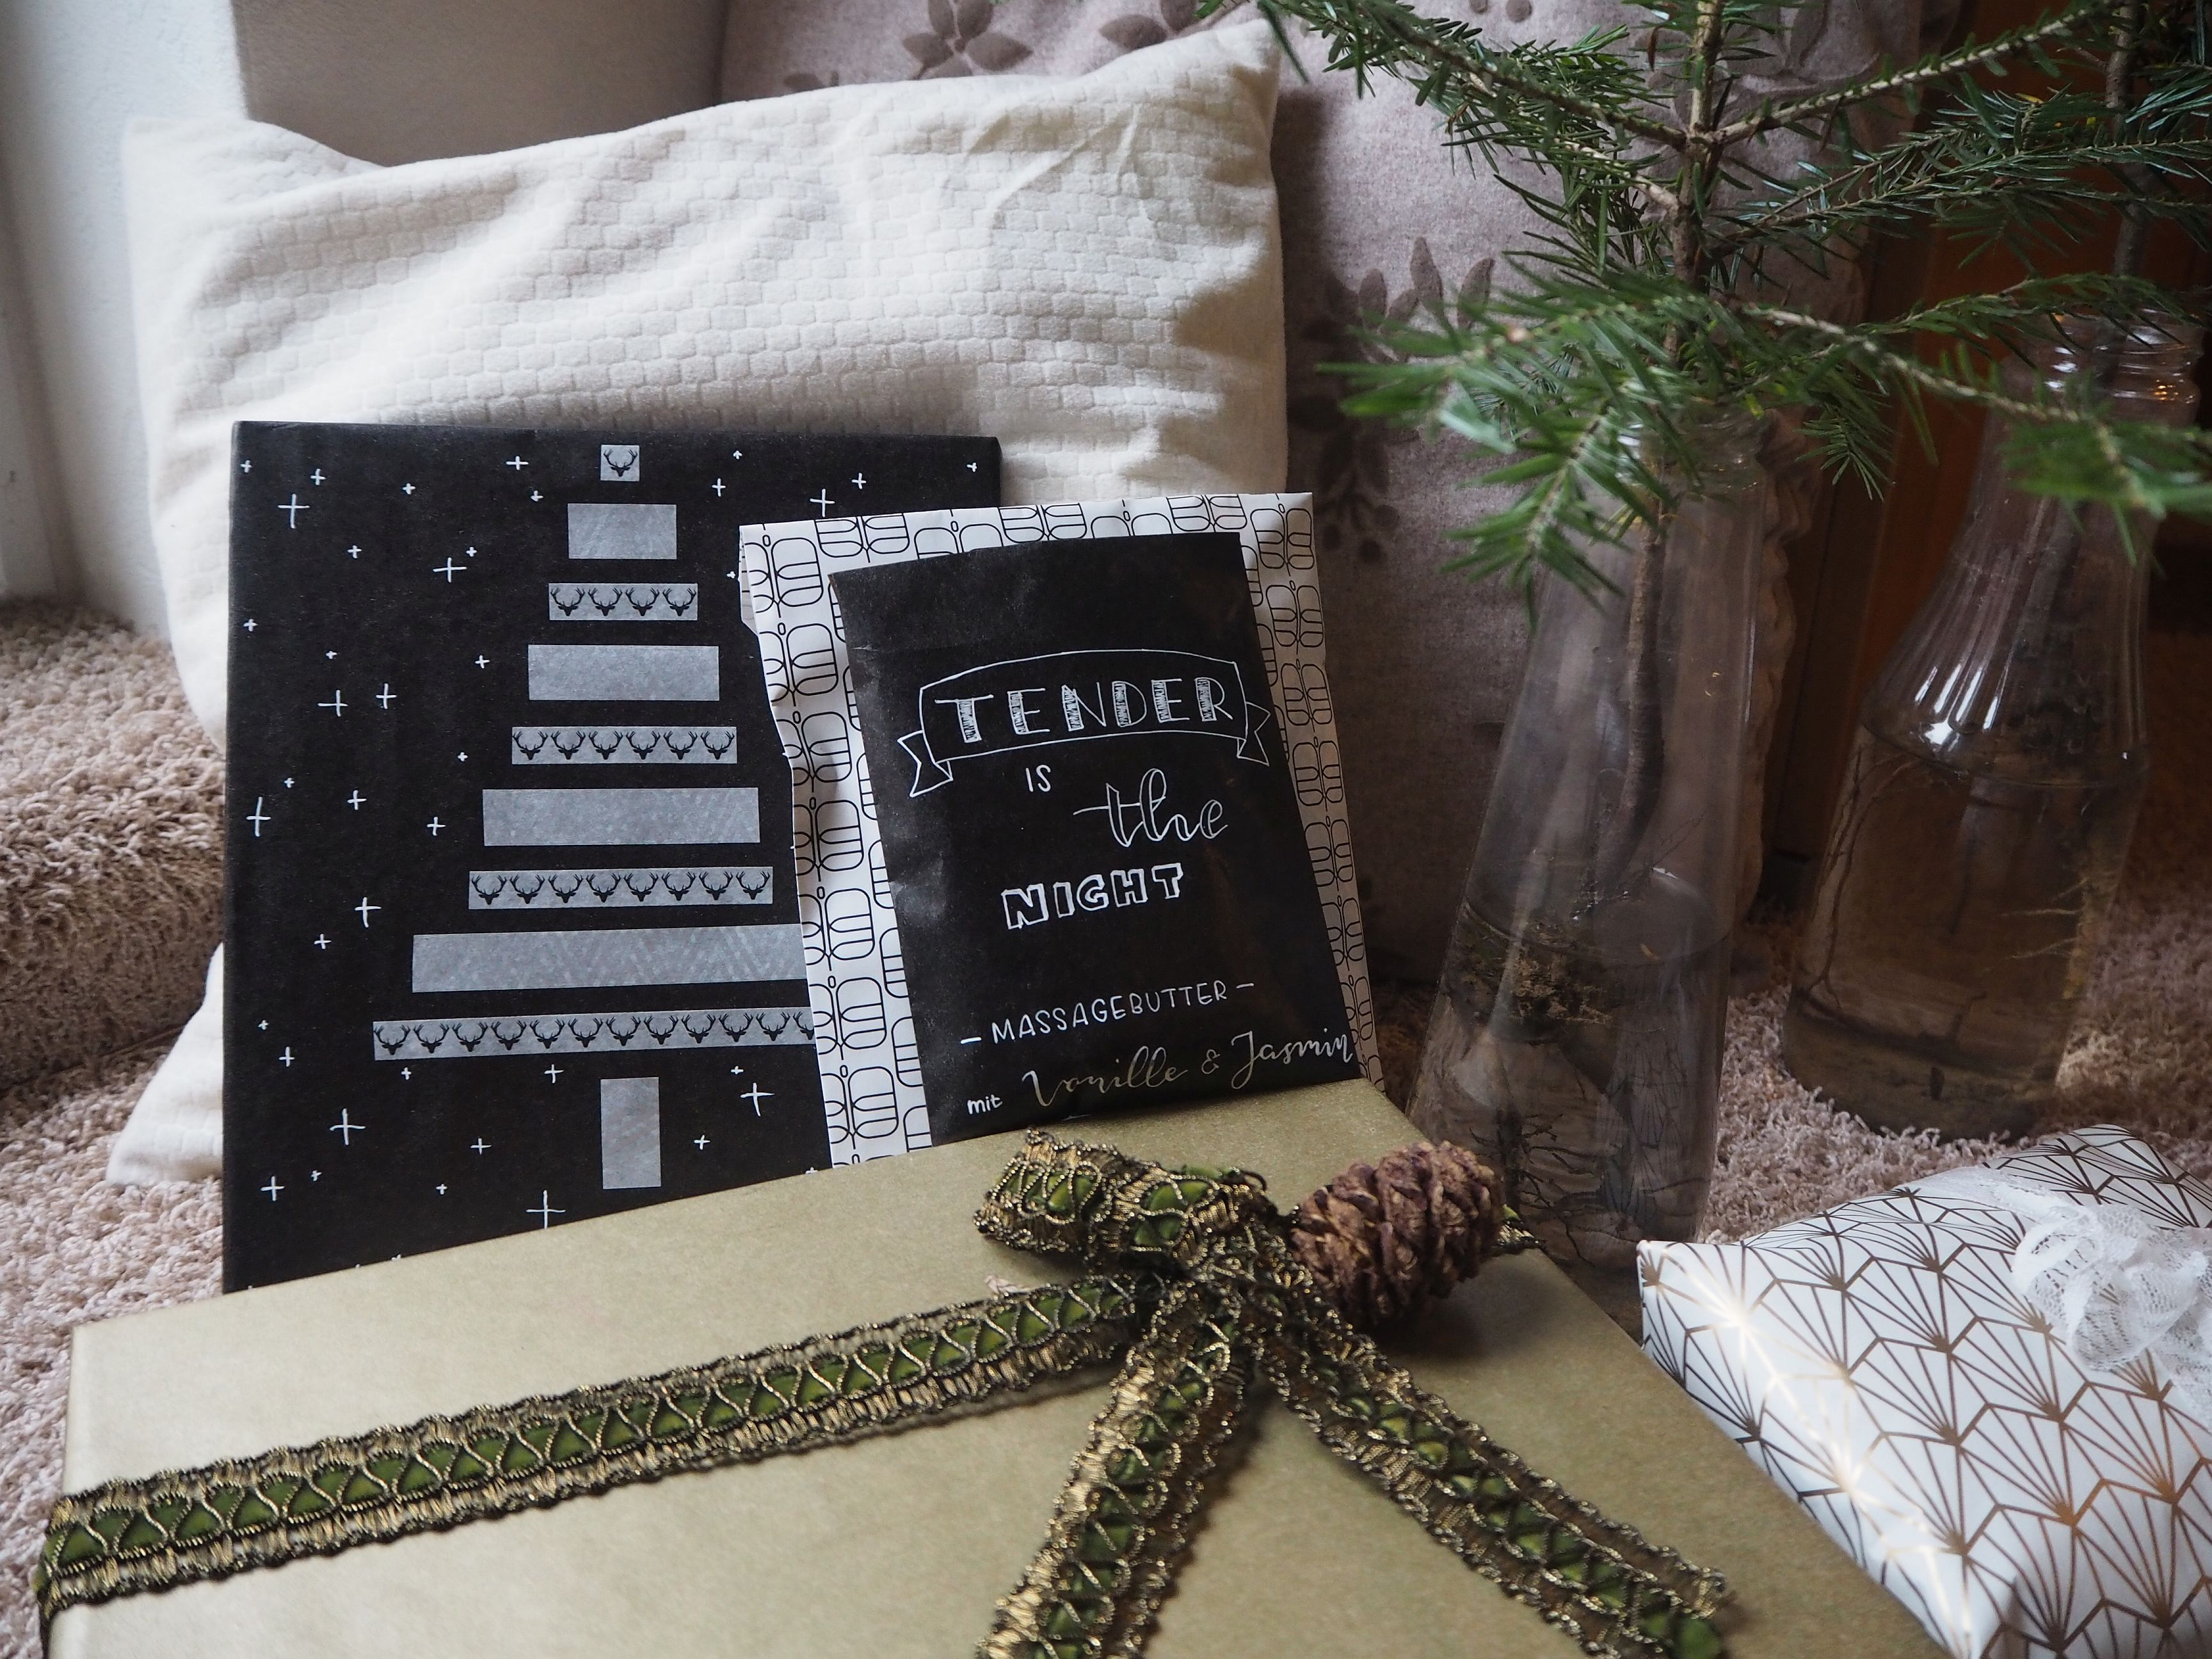 2017-12-skoen-och-kreativ-diy-wrapping-wednesday-wrapping-for-xmas-lettering-inspiration (8)